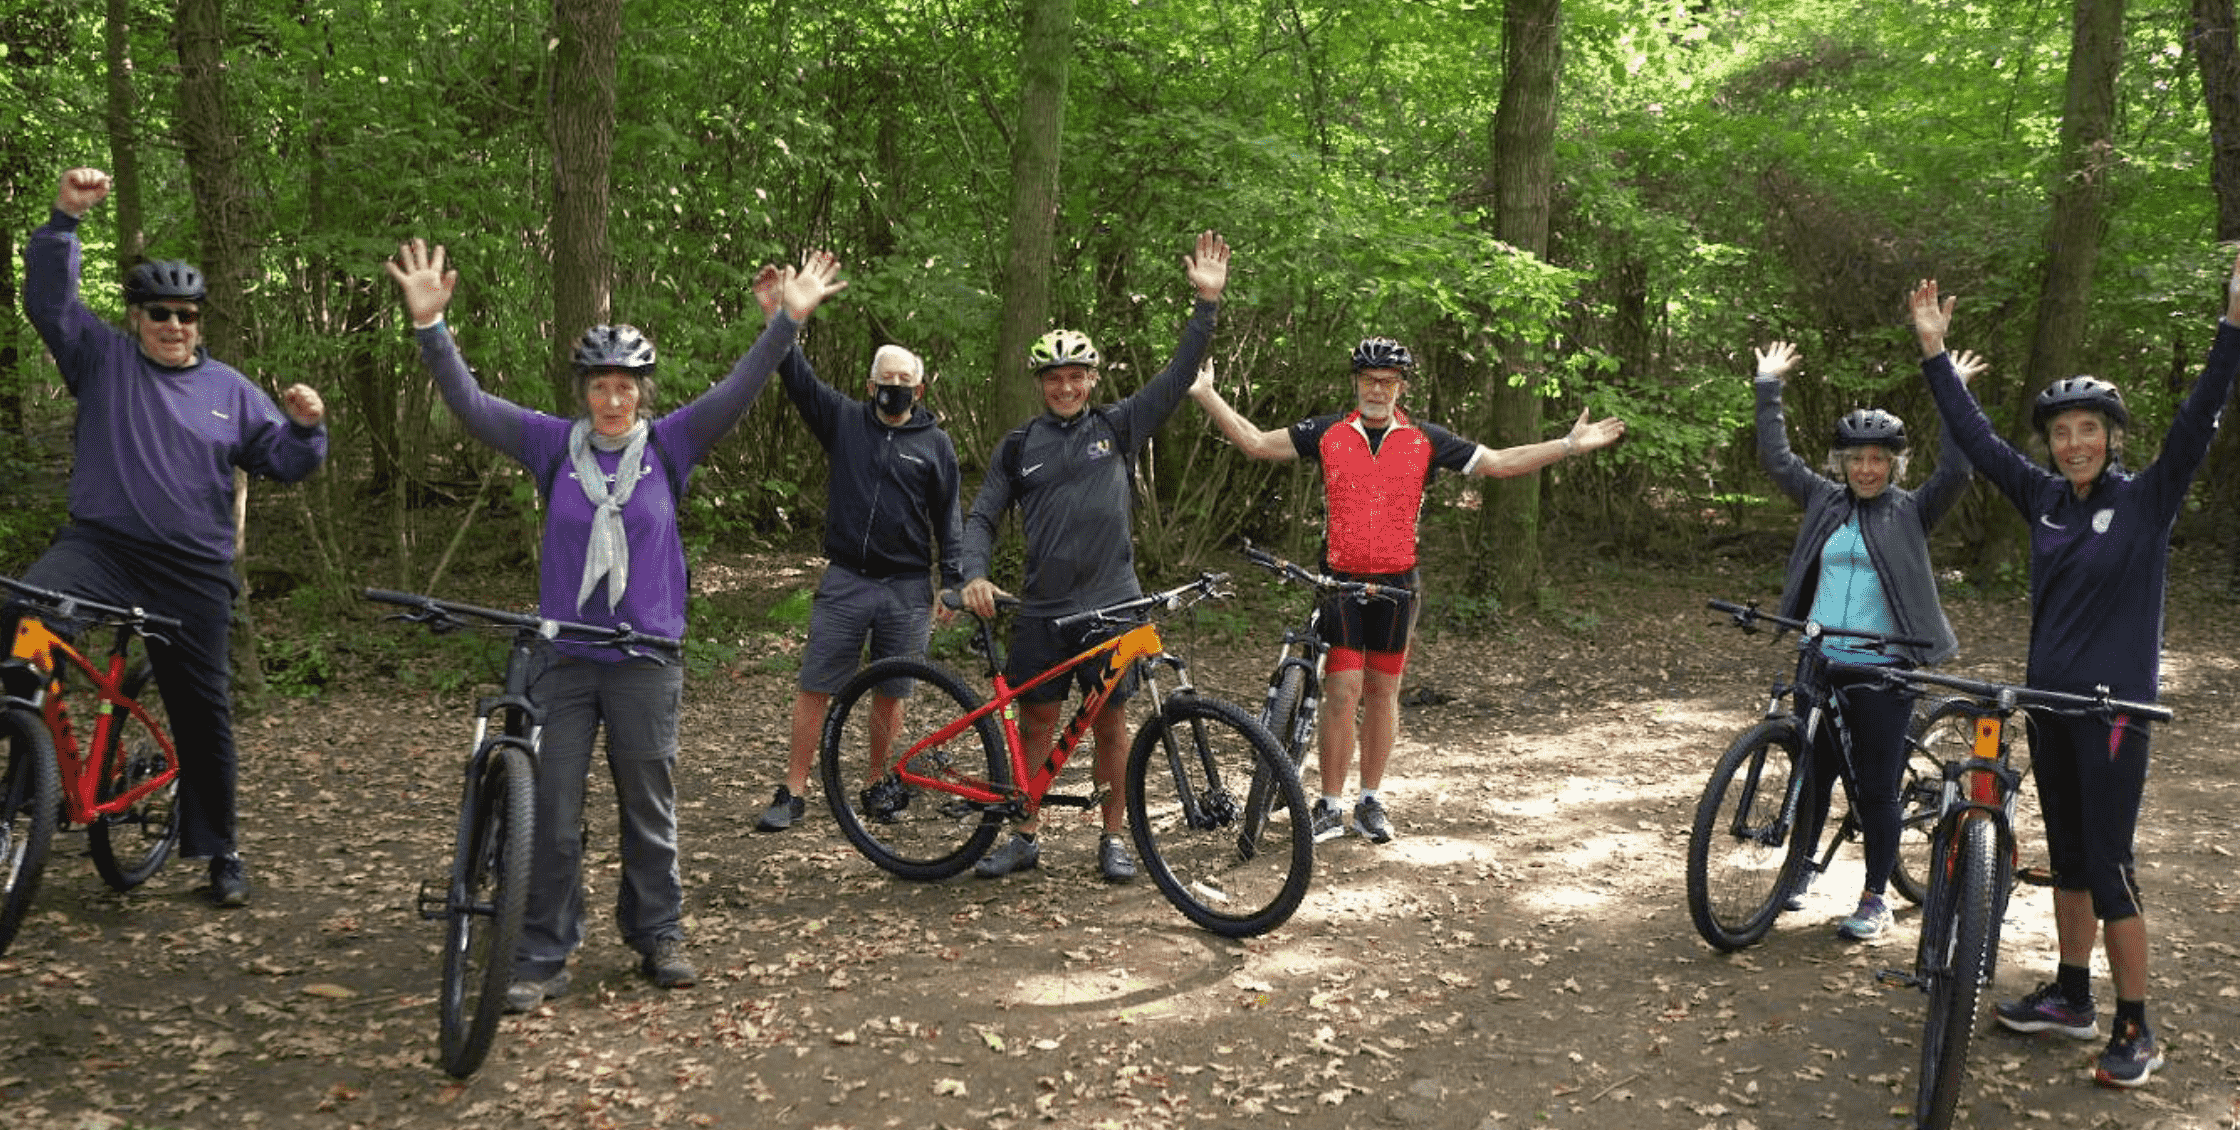 people socially distanced on bikes in a forest